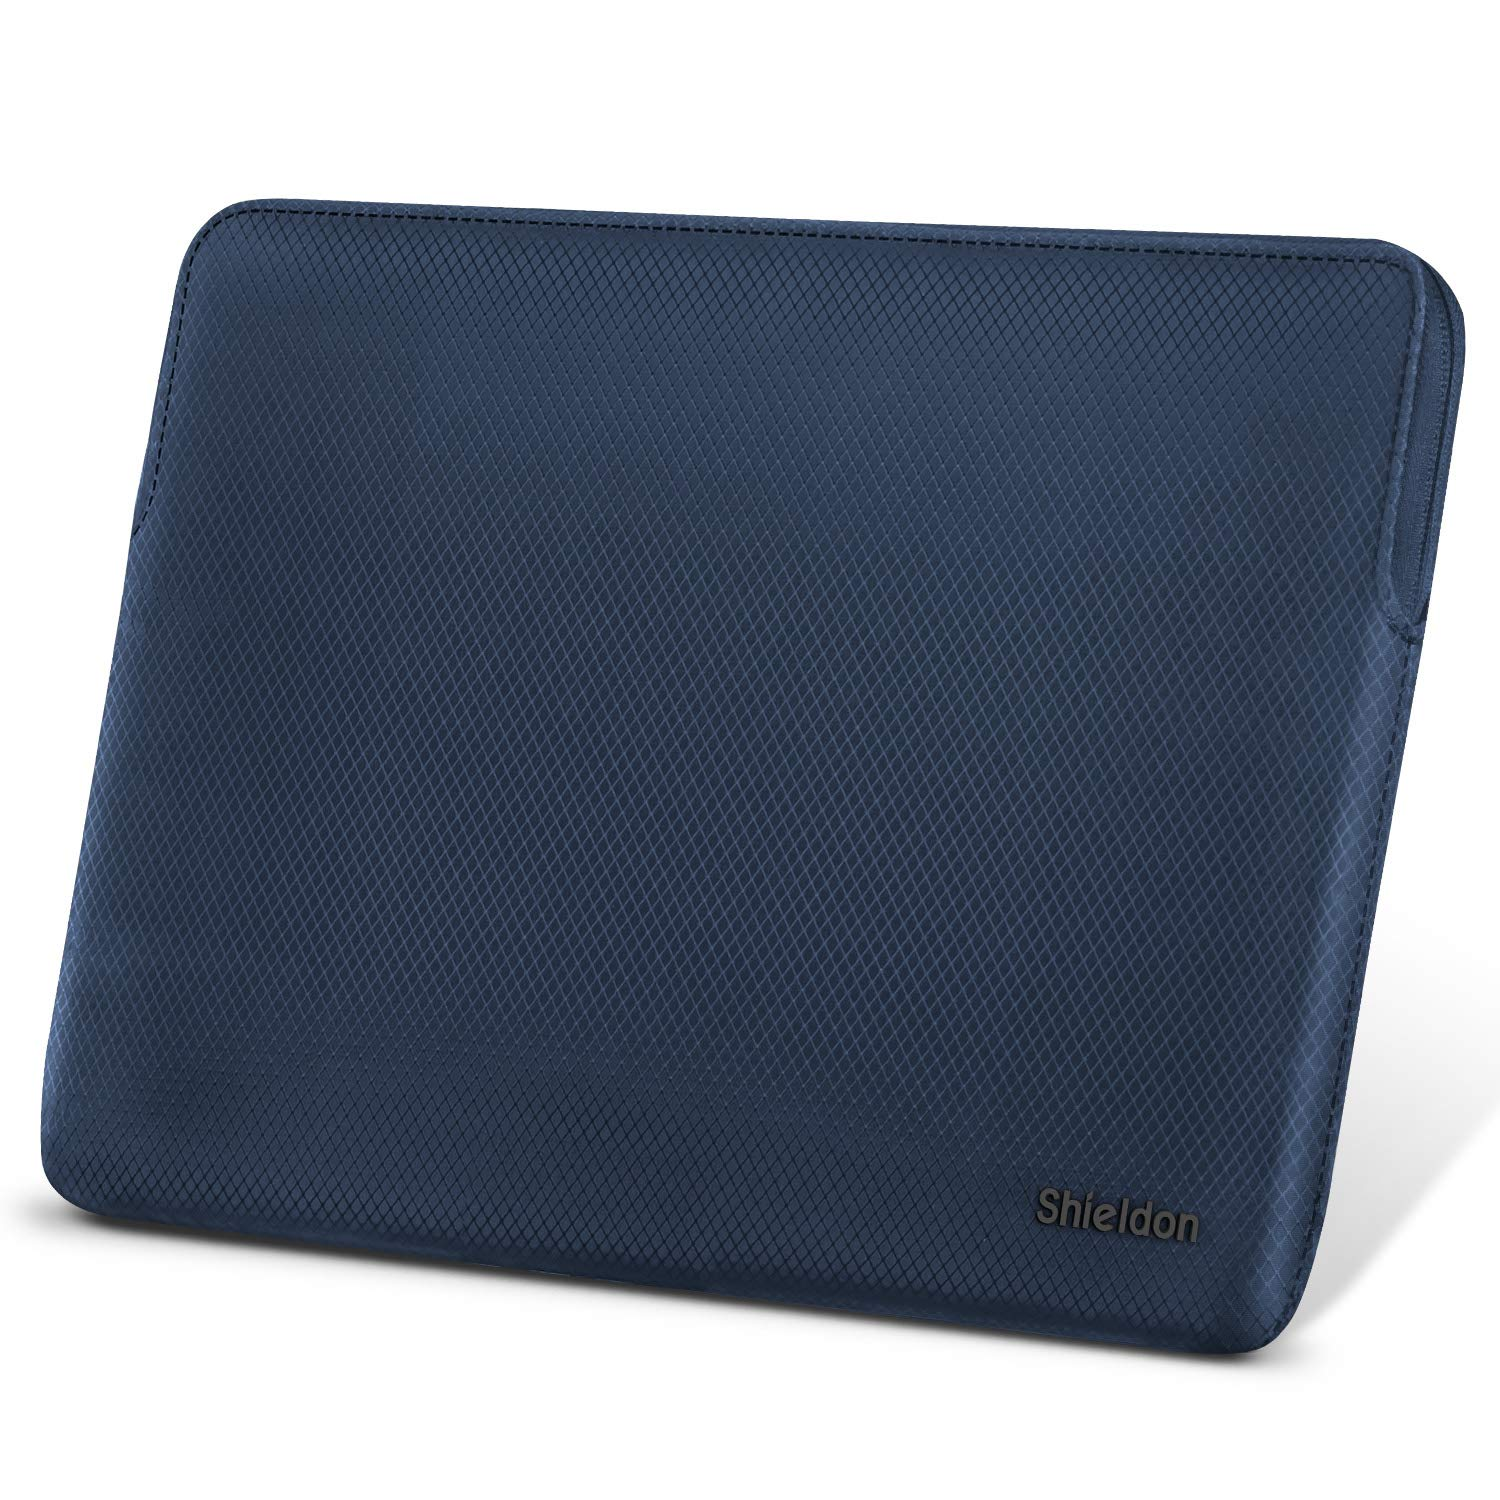 SHIELDON Water Repellent Laptop Sleeve Shockproof Case Bag Cover with Pocket Compatible with 13-13.3 Inch MacBook Air Retina,MacBook Pro Retina,Surface Laptop2,IdeaPad 730S,XPS 9370,Switch 3 - Blue